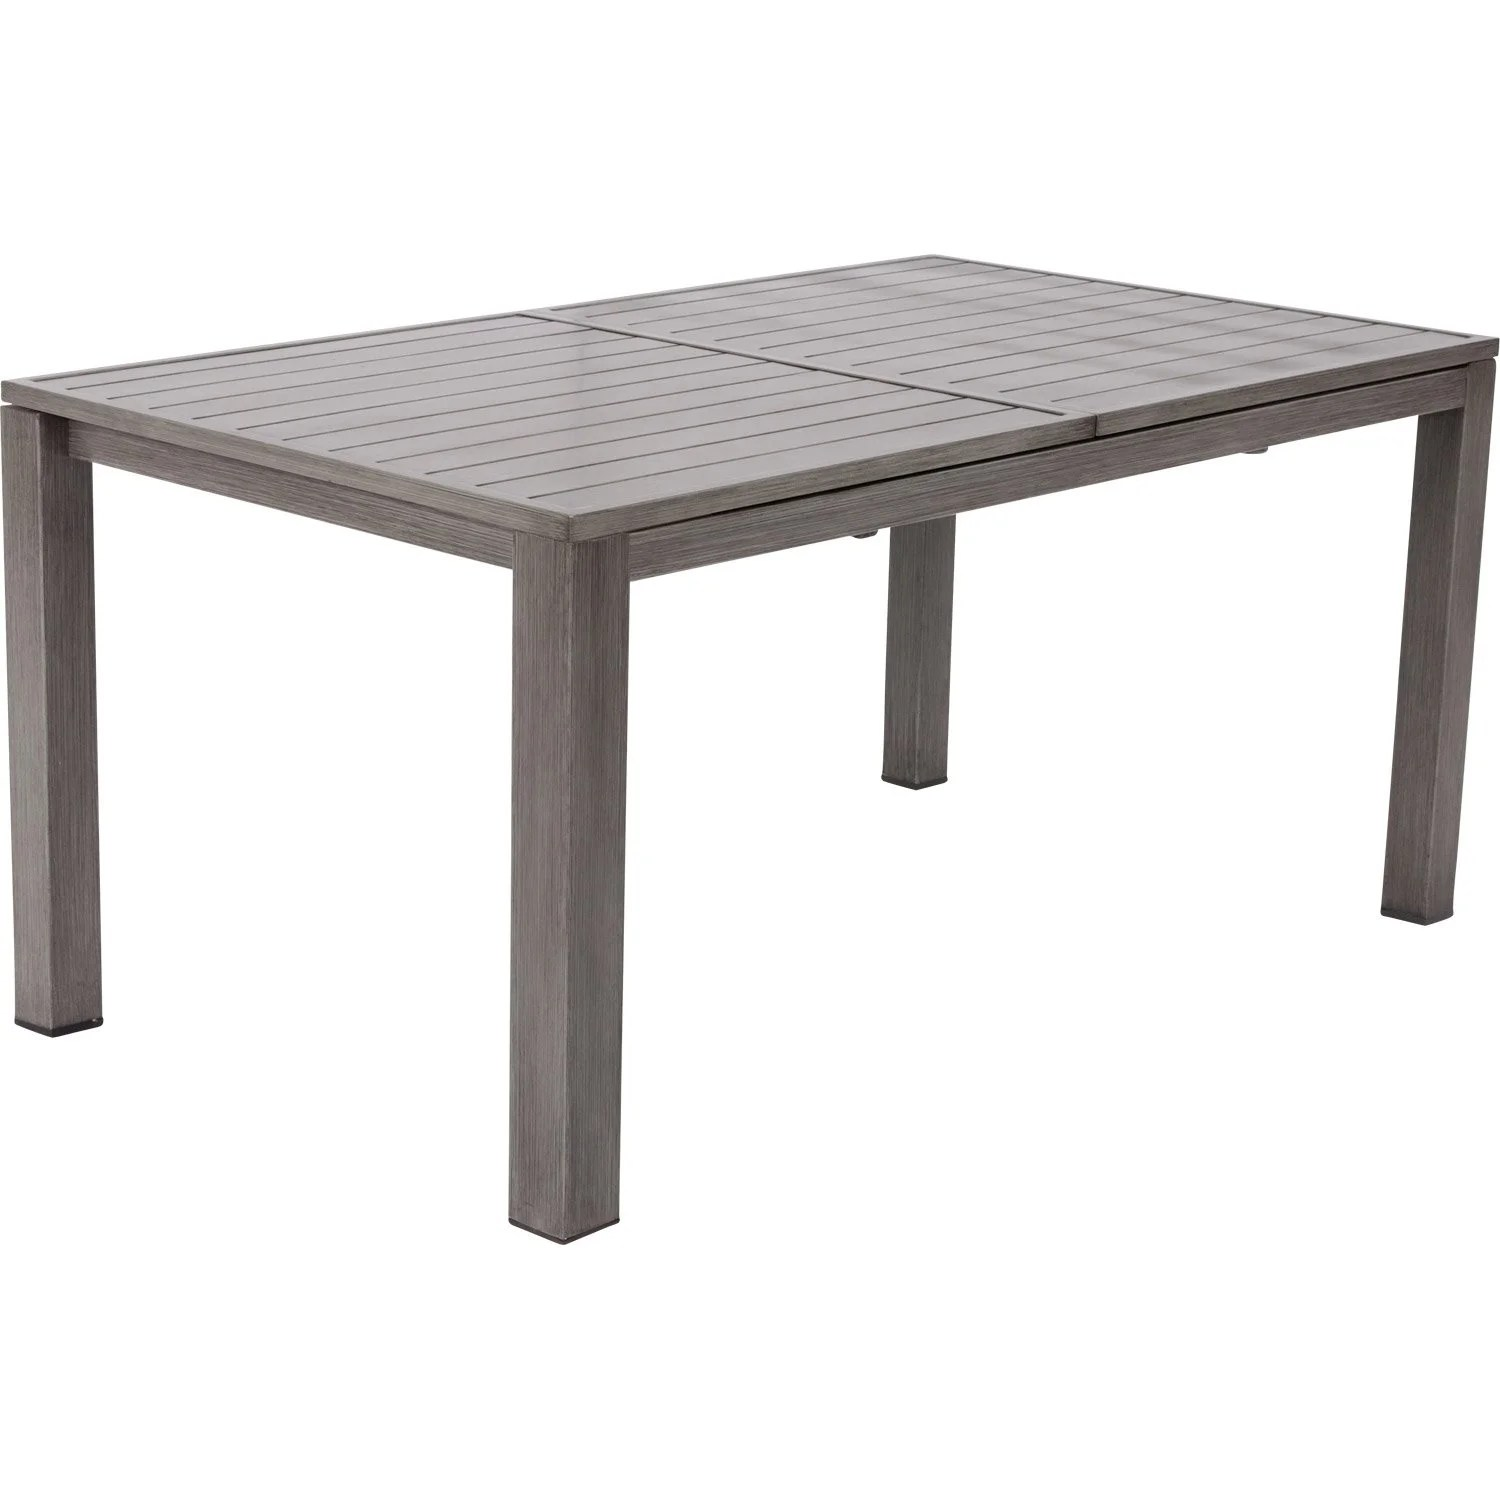 Castorama Table De Jardin Table Bois Castorama Wraste